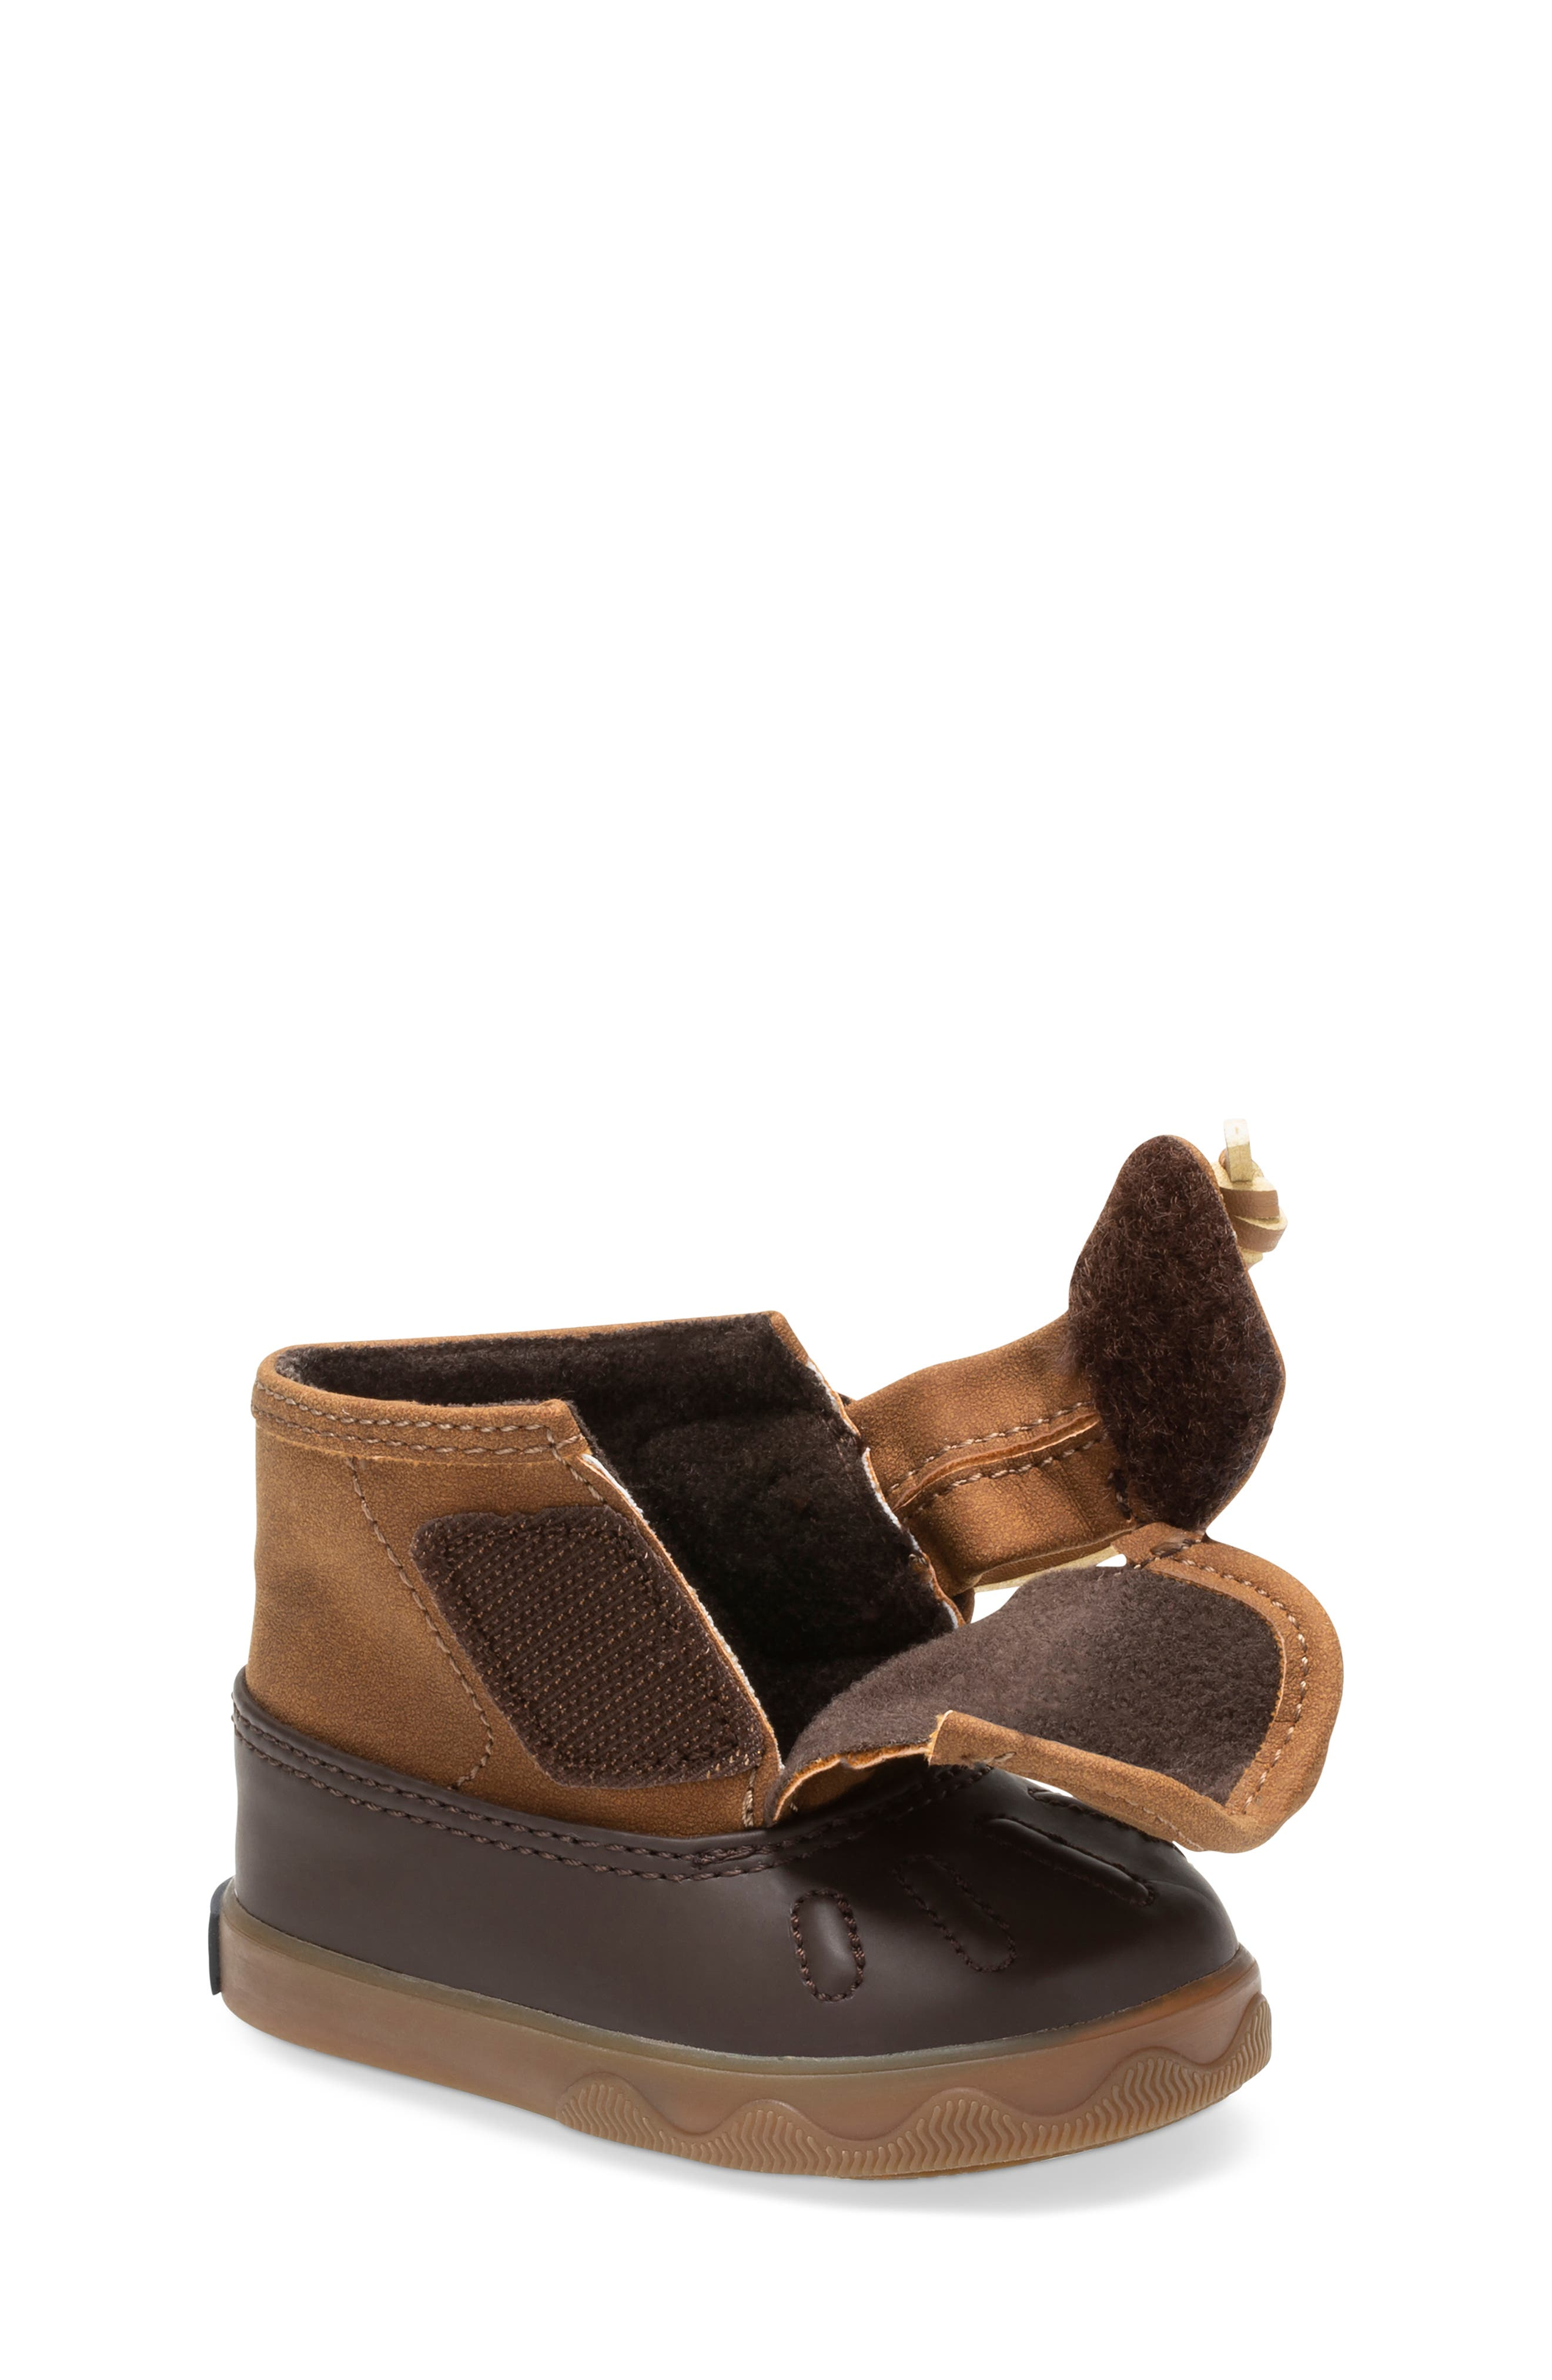 Sperry Icestorm Crib Duck Bootie,                             Alternate thumbnail 7, color,                             TAN/ BROWN